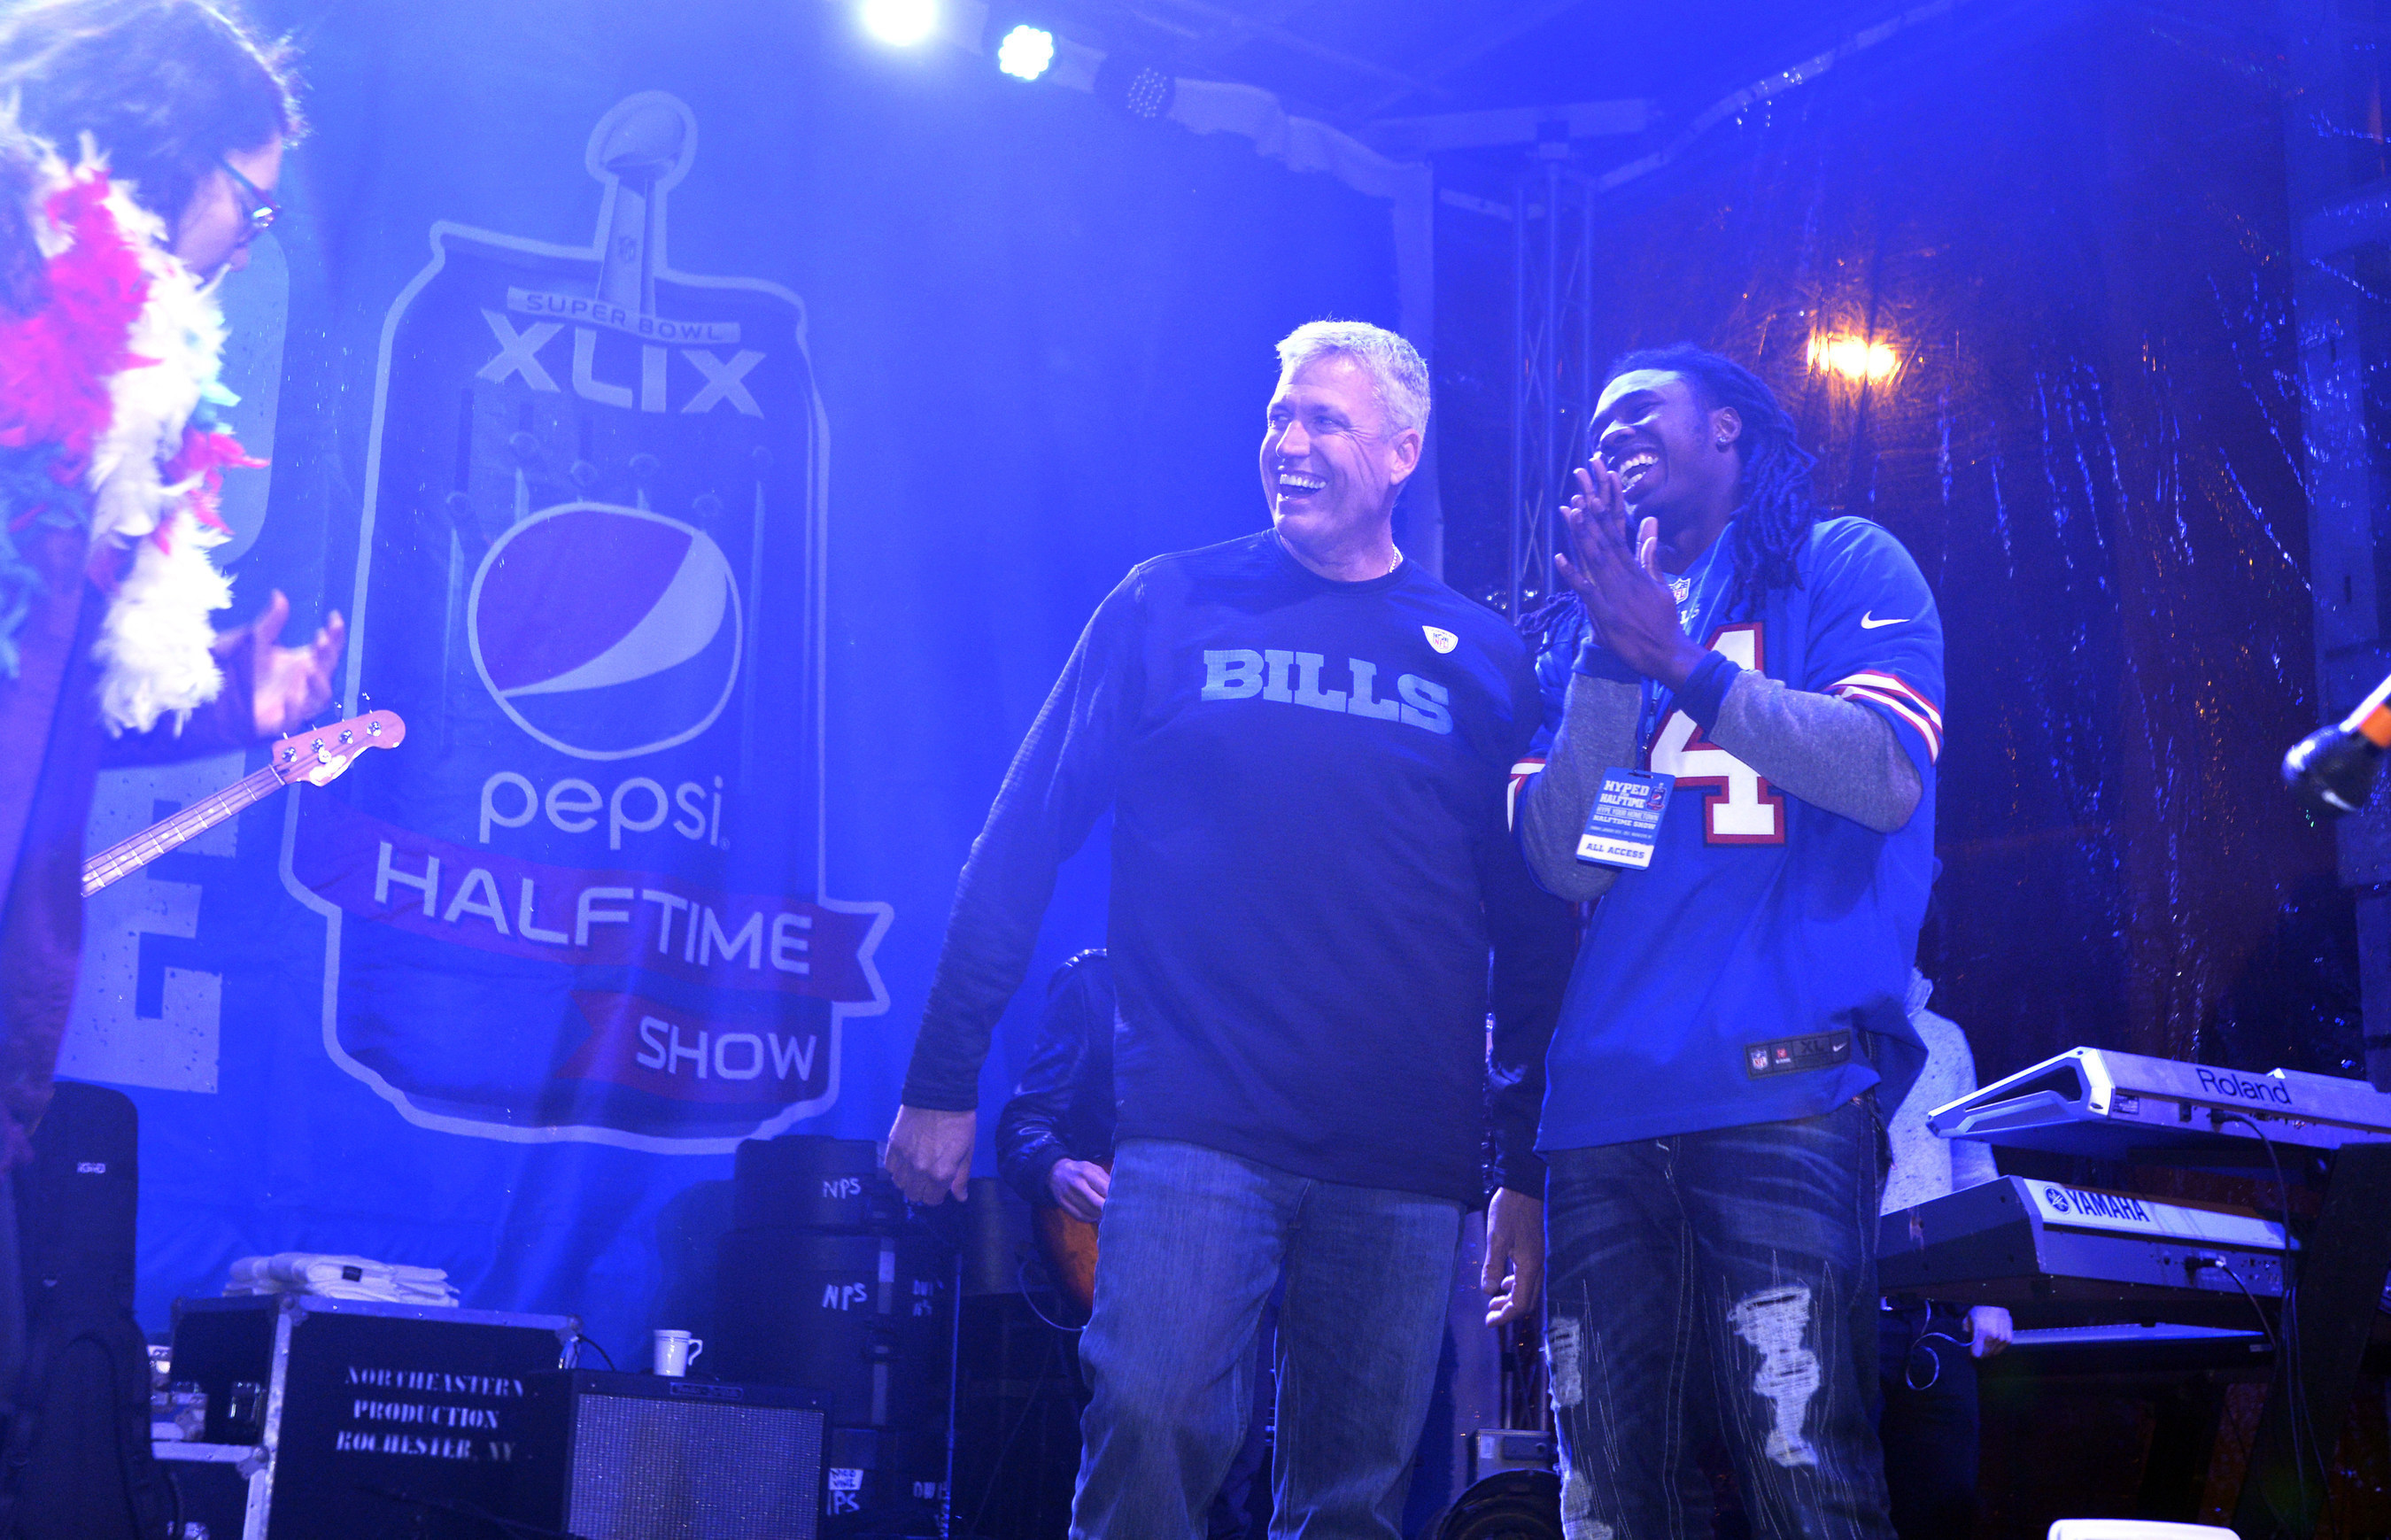 Rex Ryan, new head coach of the Buffalo Bills, and Sammy Watkins, star wide-receiver, joined America's most  ...